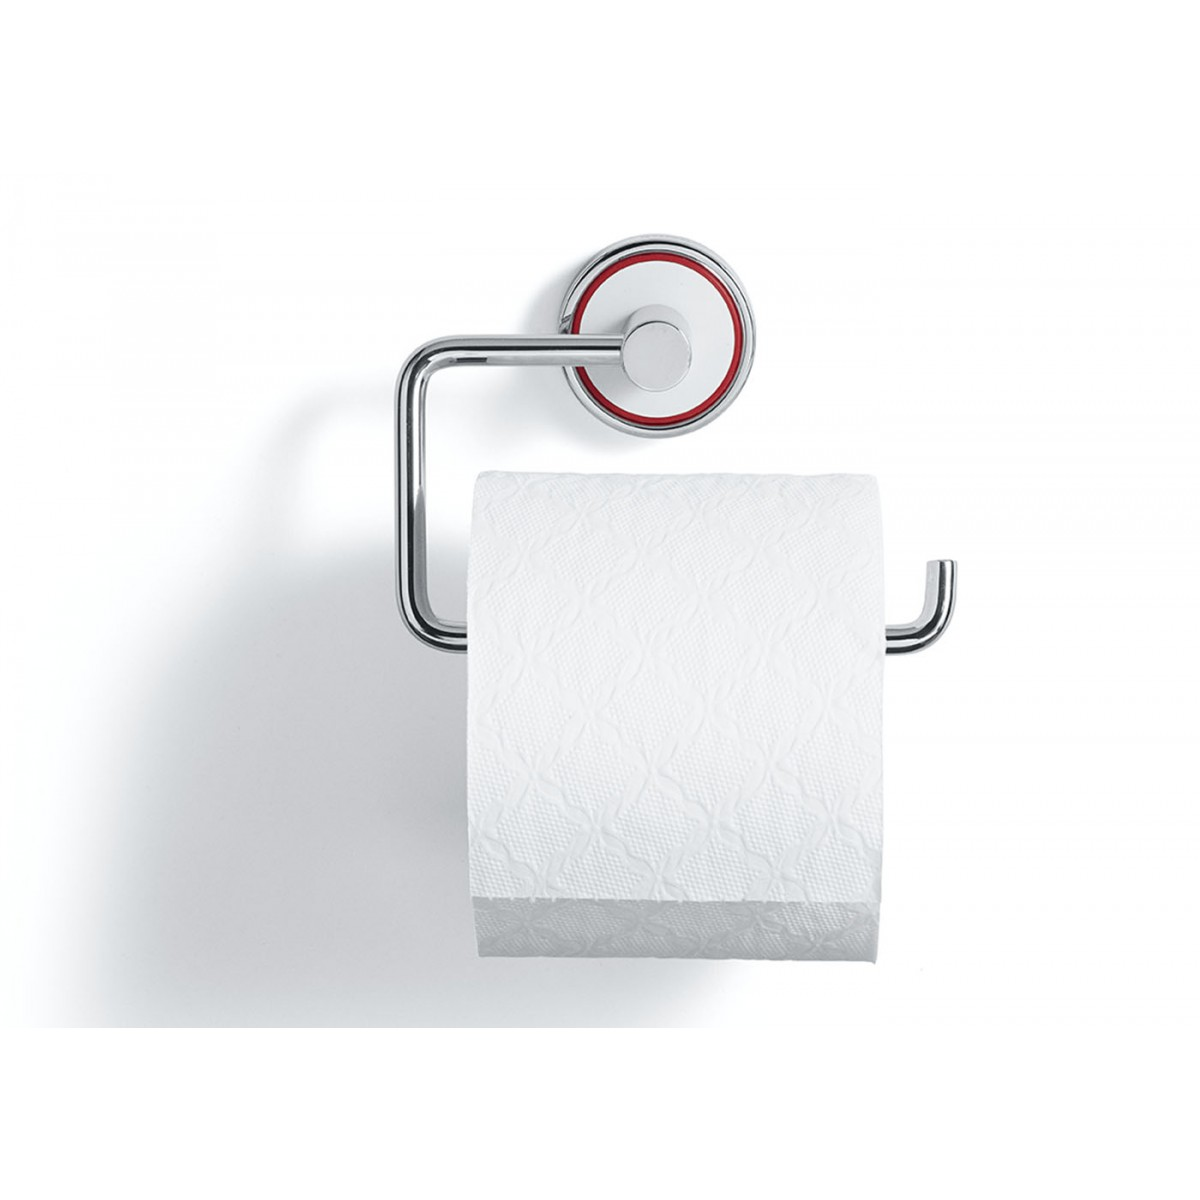 Porte papier wc design rode bath for Porte toilette